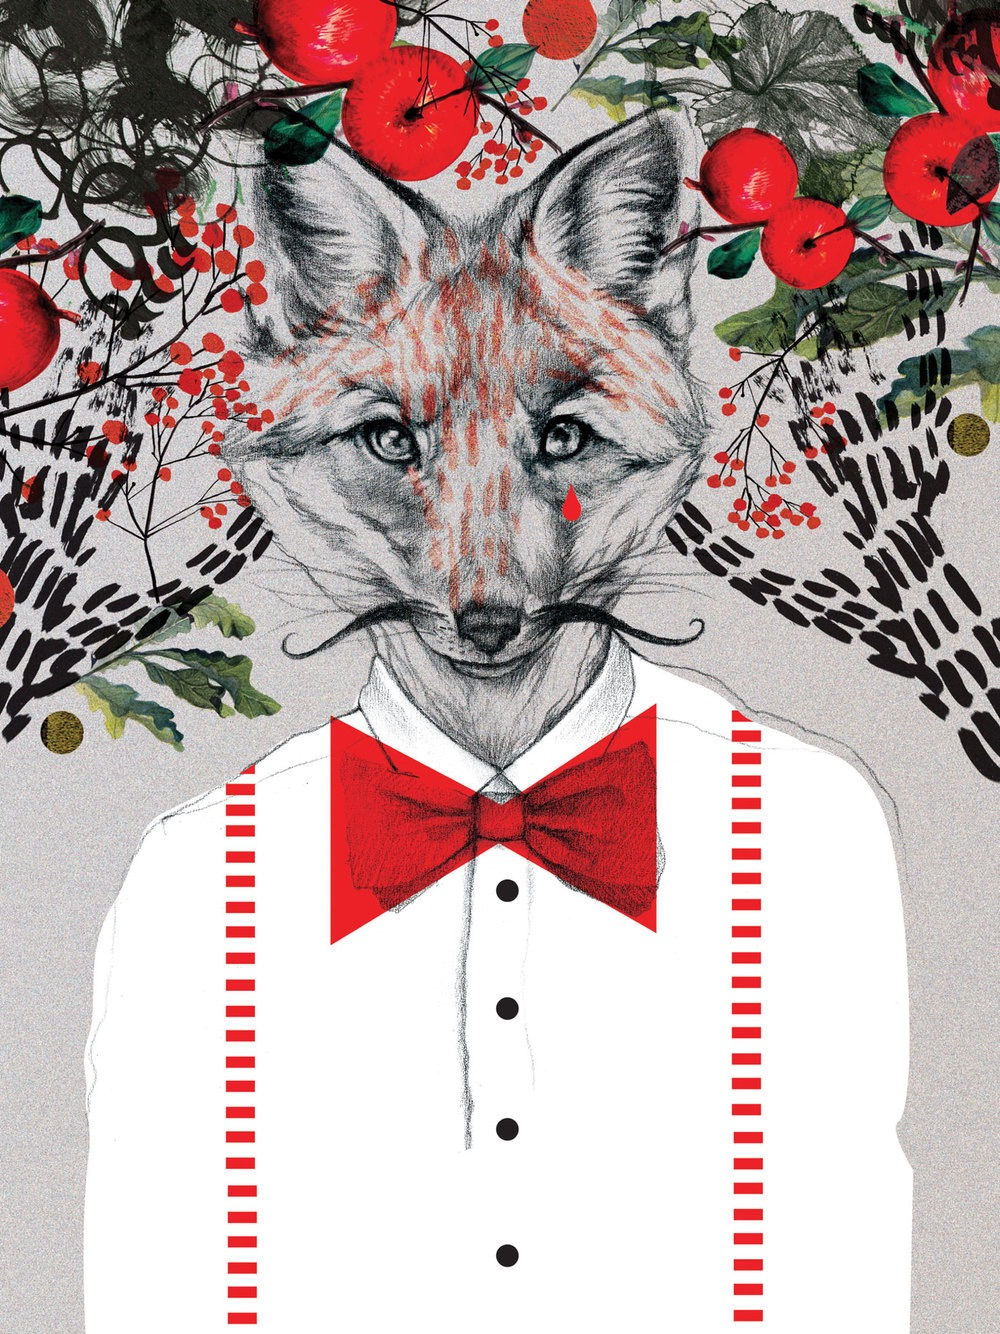 illustrator, illustrators, illustration, illustrations, apples, apple, tree, trees, accent color, accent, contrast, floral, branches, leaf, leaves, fox, mustache, bowtie, tear, cry, crying